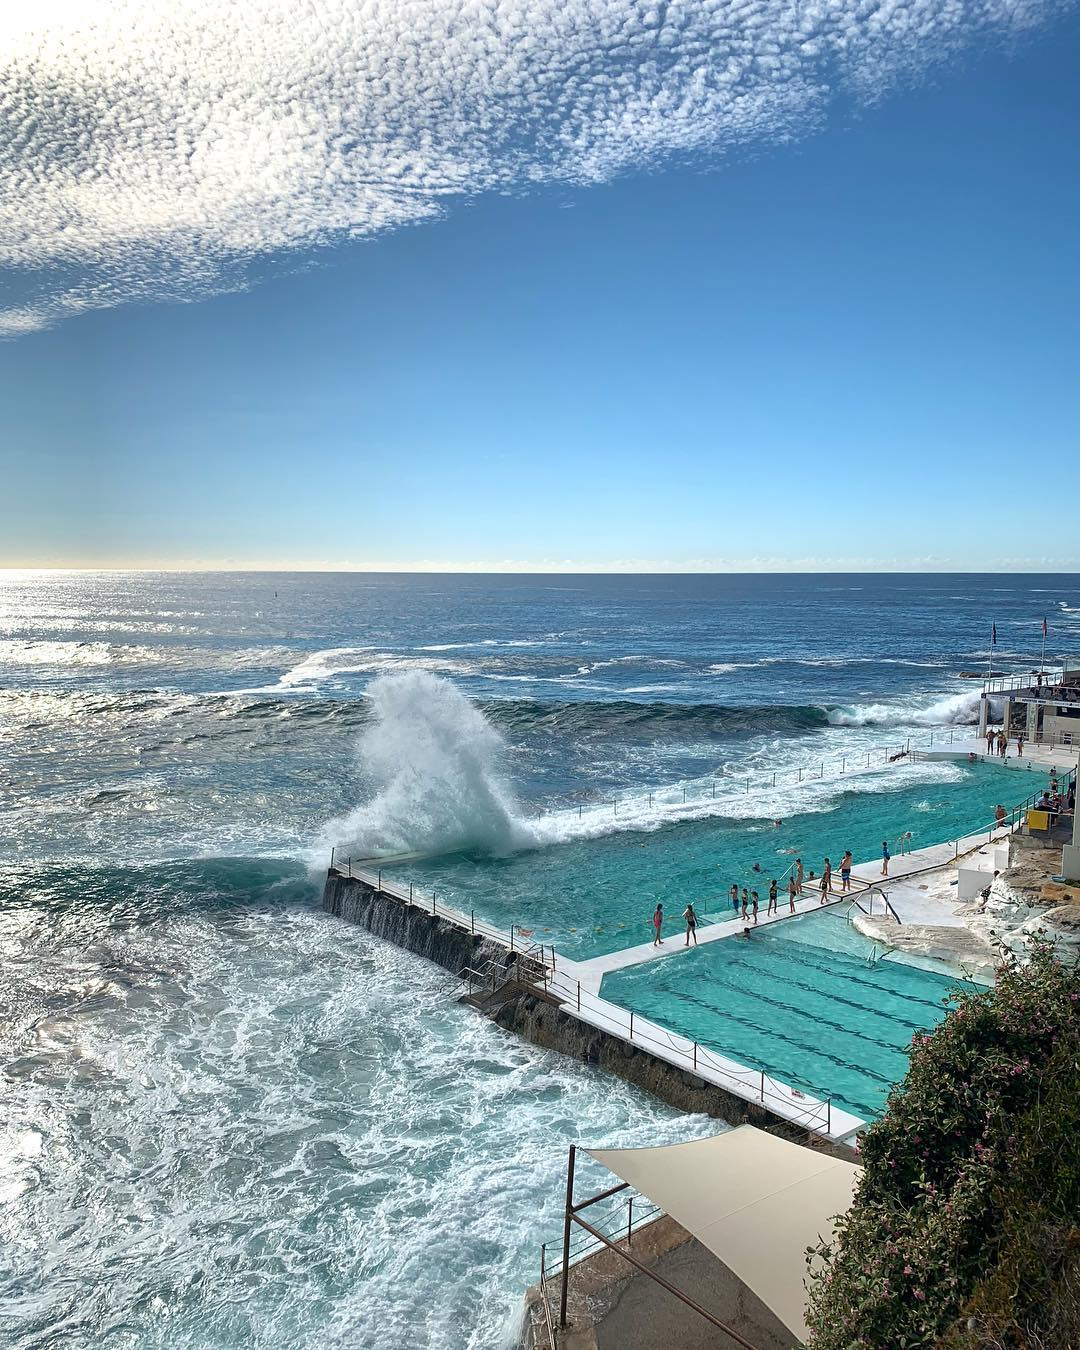 A morning swim at the Bondi Icebergs